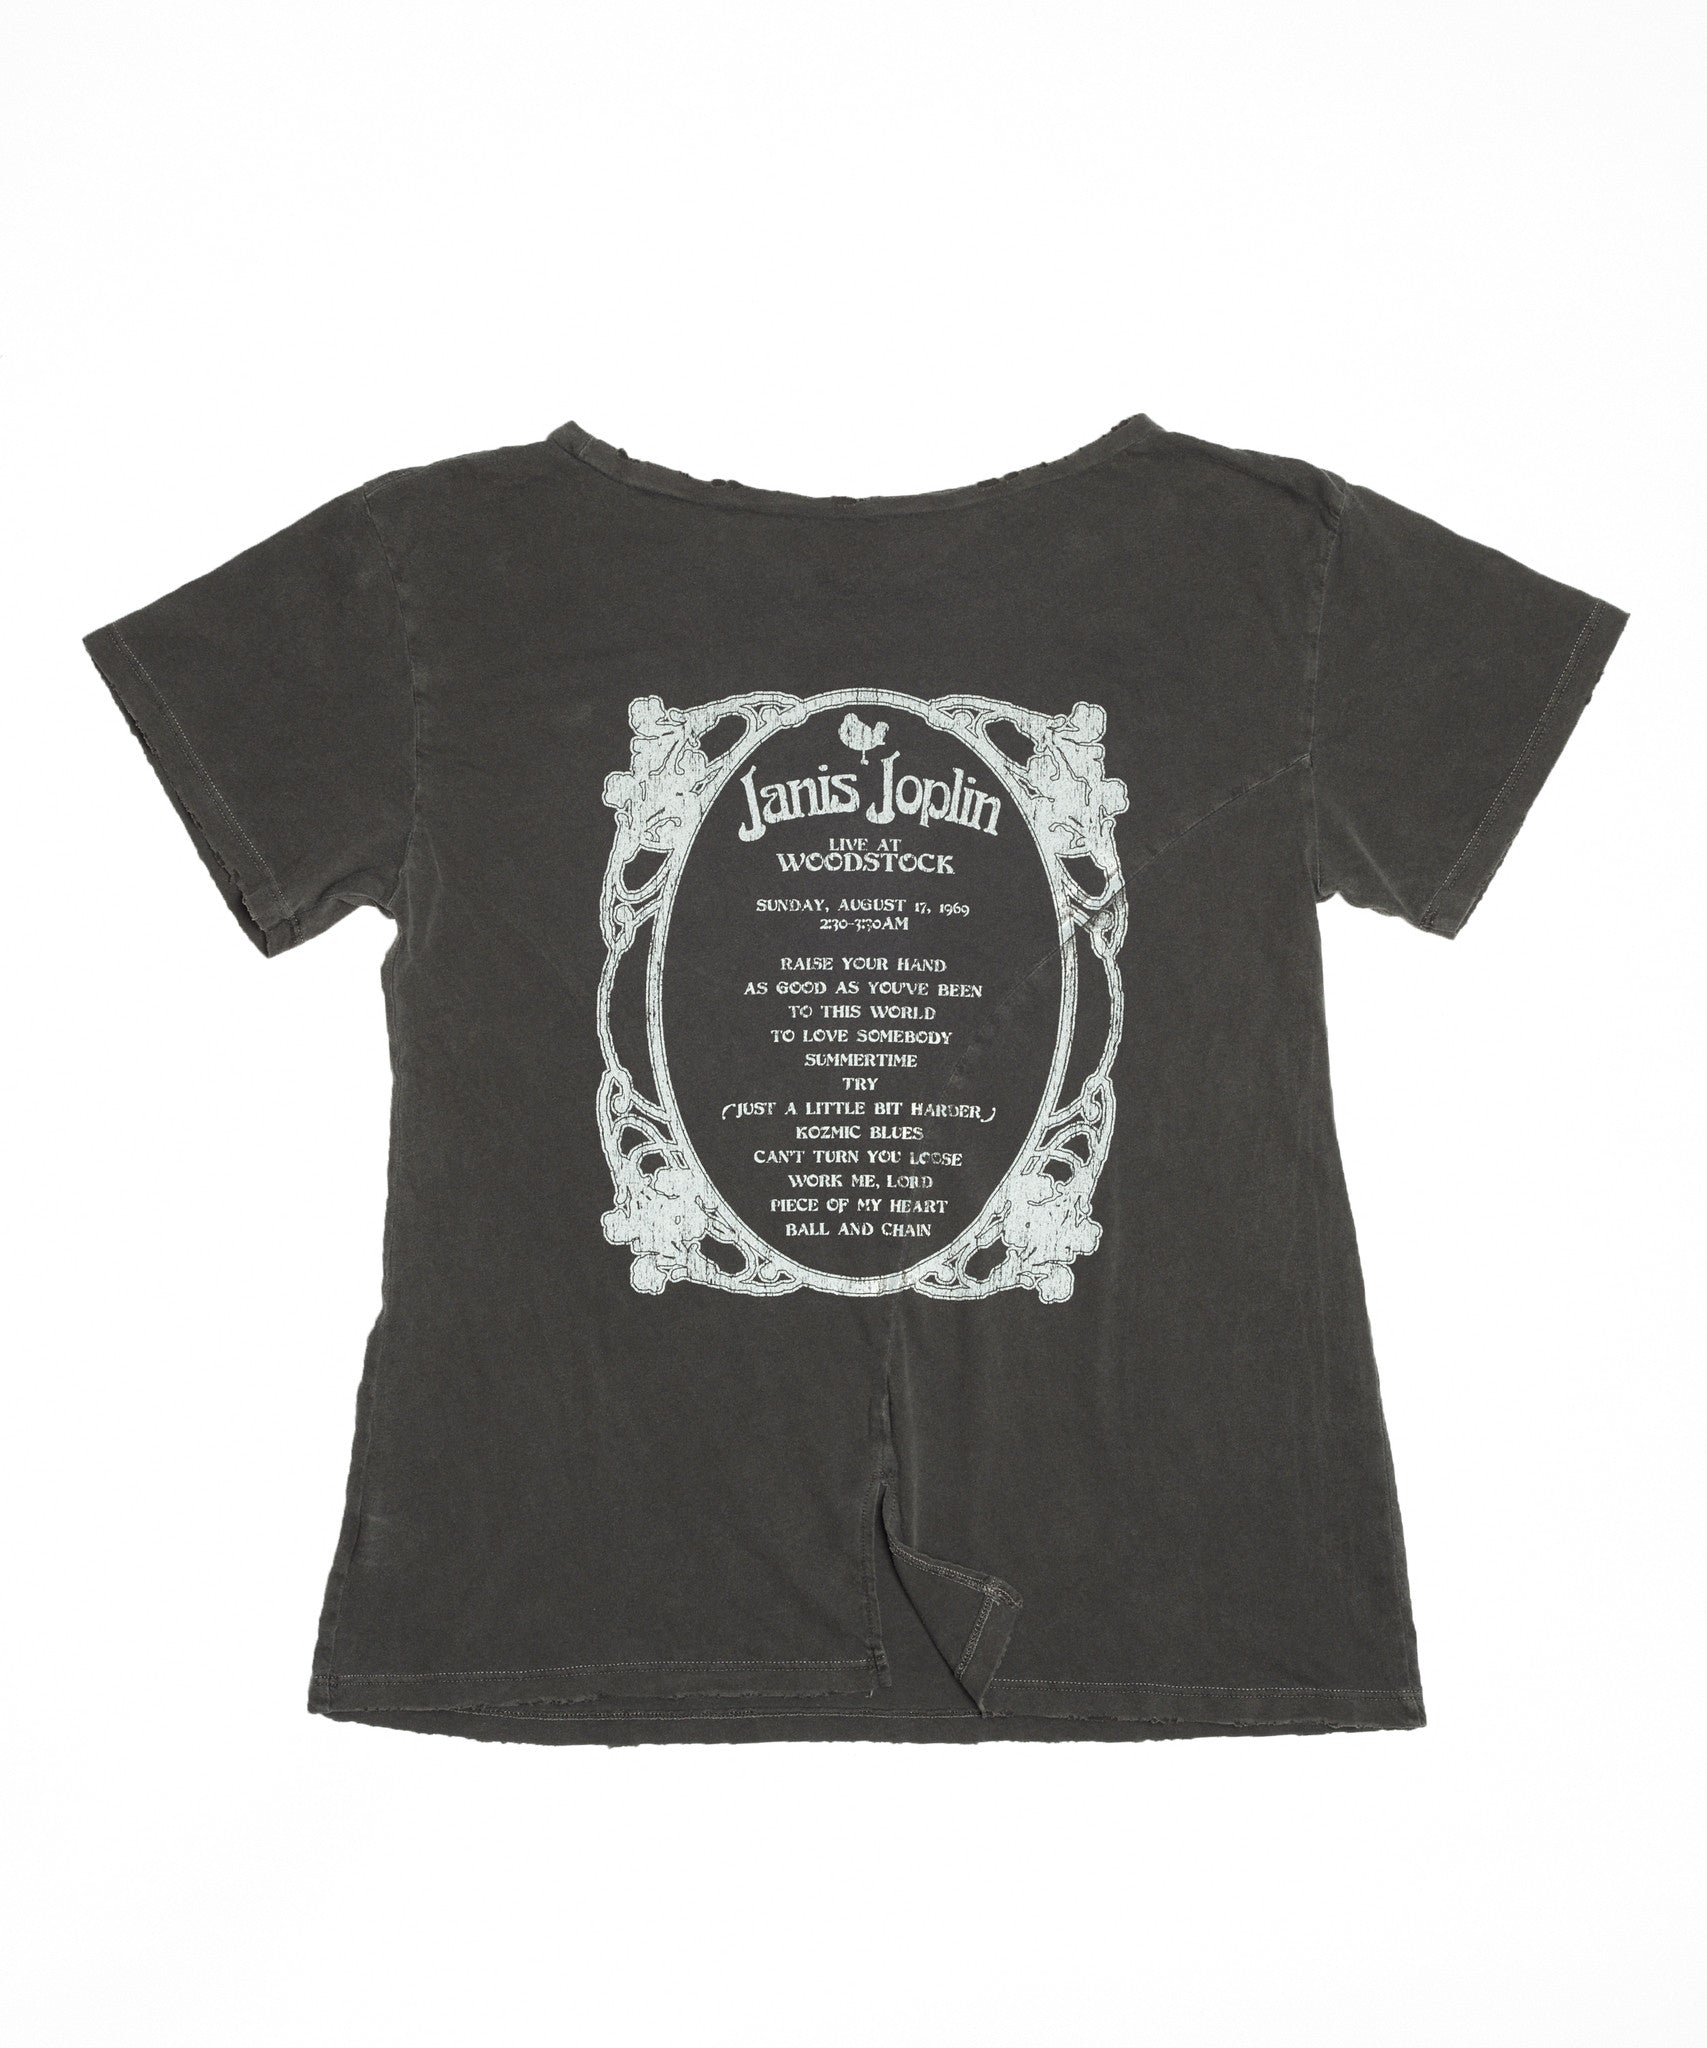 Janis Joplin Live at Woodstock Boyfriend Tee - Vintage Black - Women's Tee Shirt - Midnight Rider